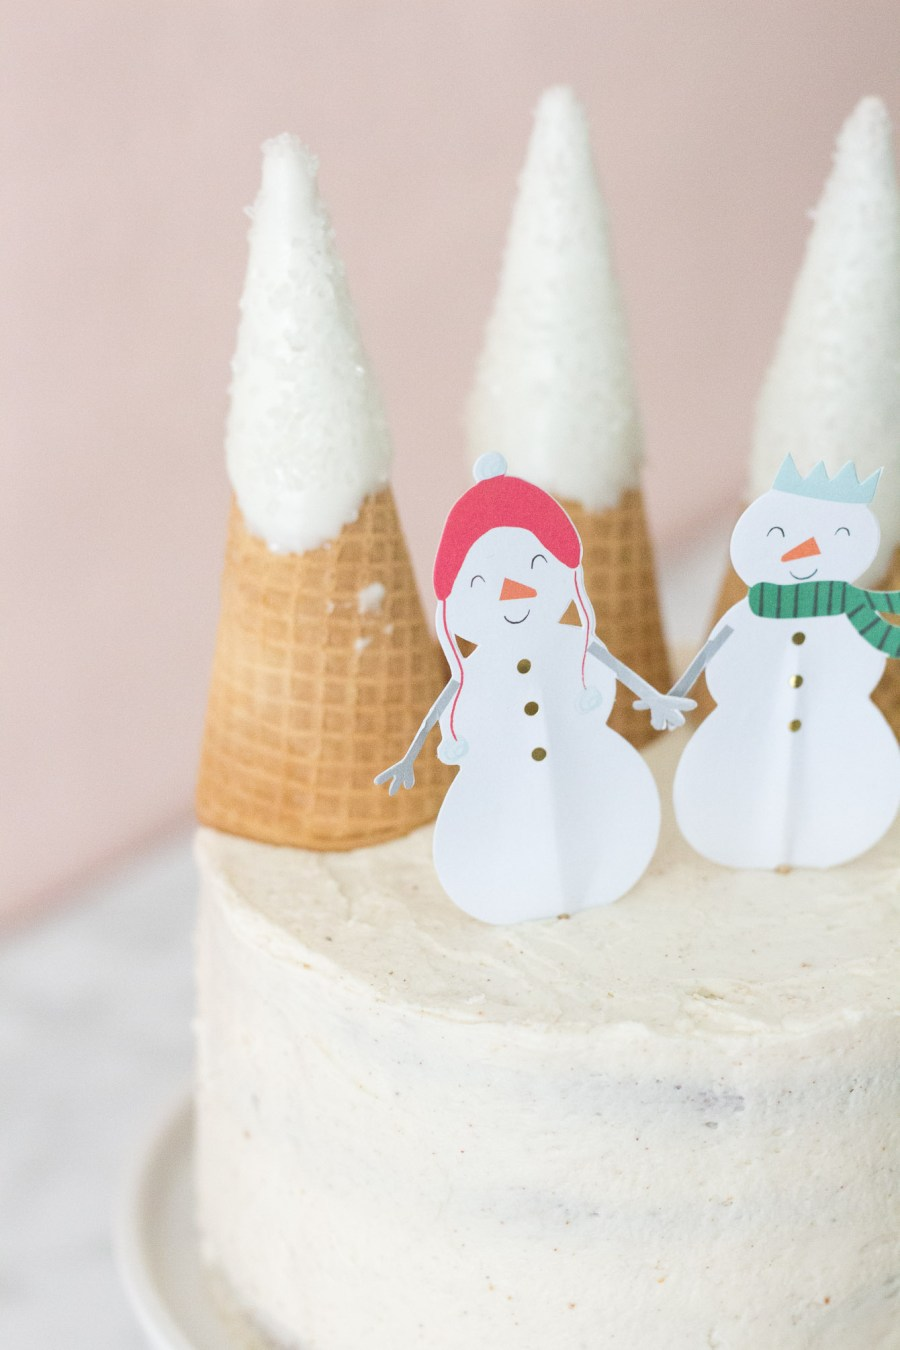 Eggnog Cake with Snowmen and ice cream cone Mountains